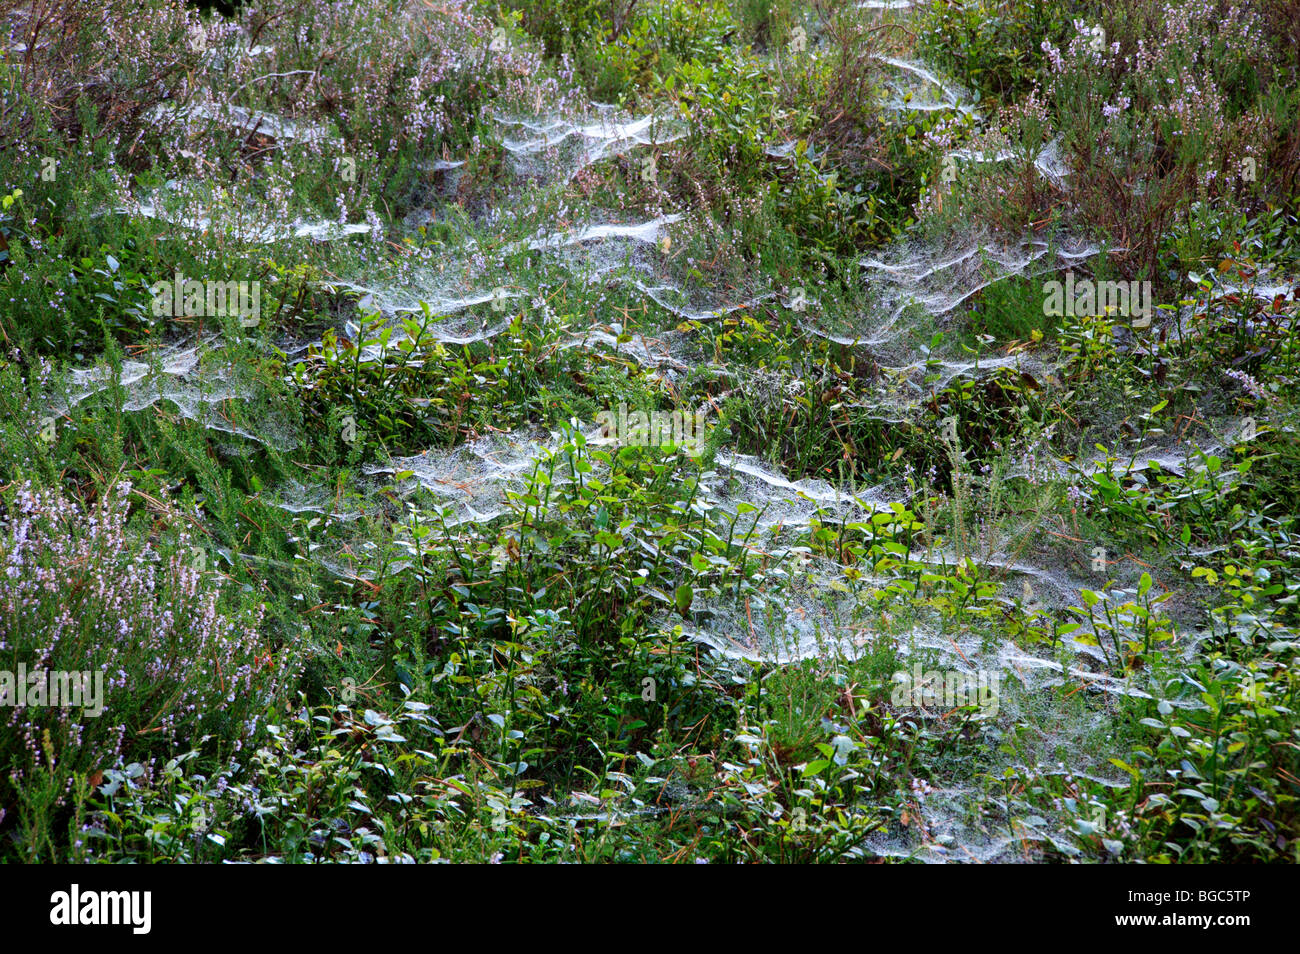 Spiders webs on boggy ground by Loch an Eilein near Aviemore, Inverness-shire, Scotland, United Kingdom. - Stock Image